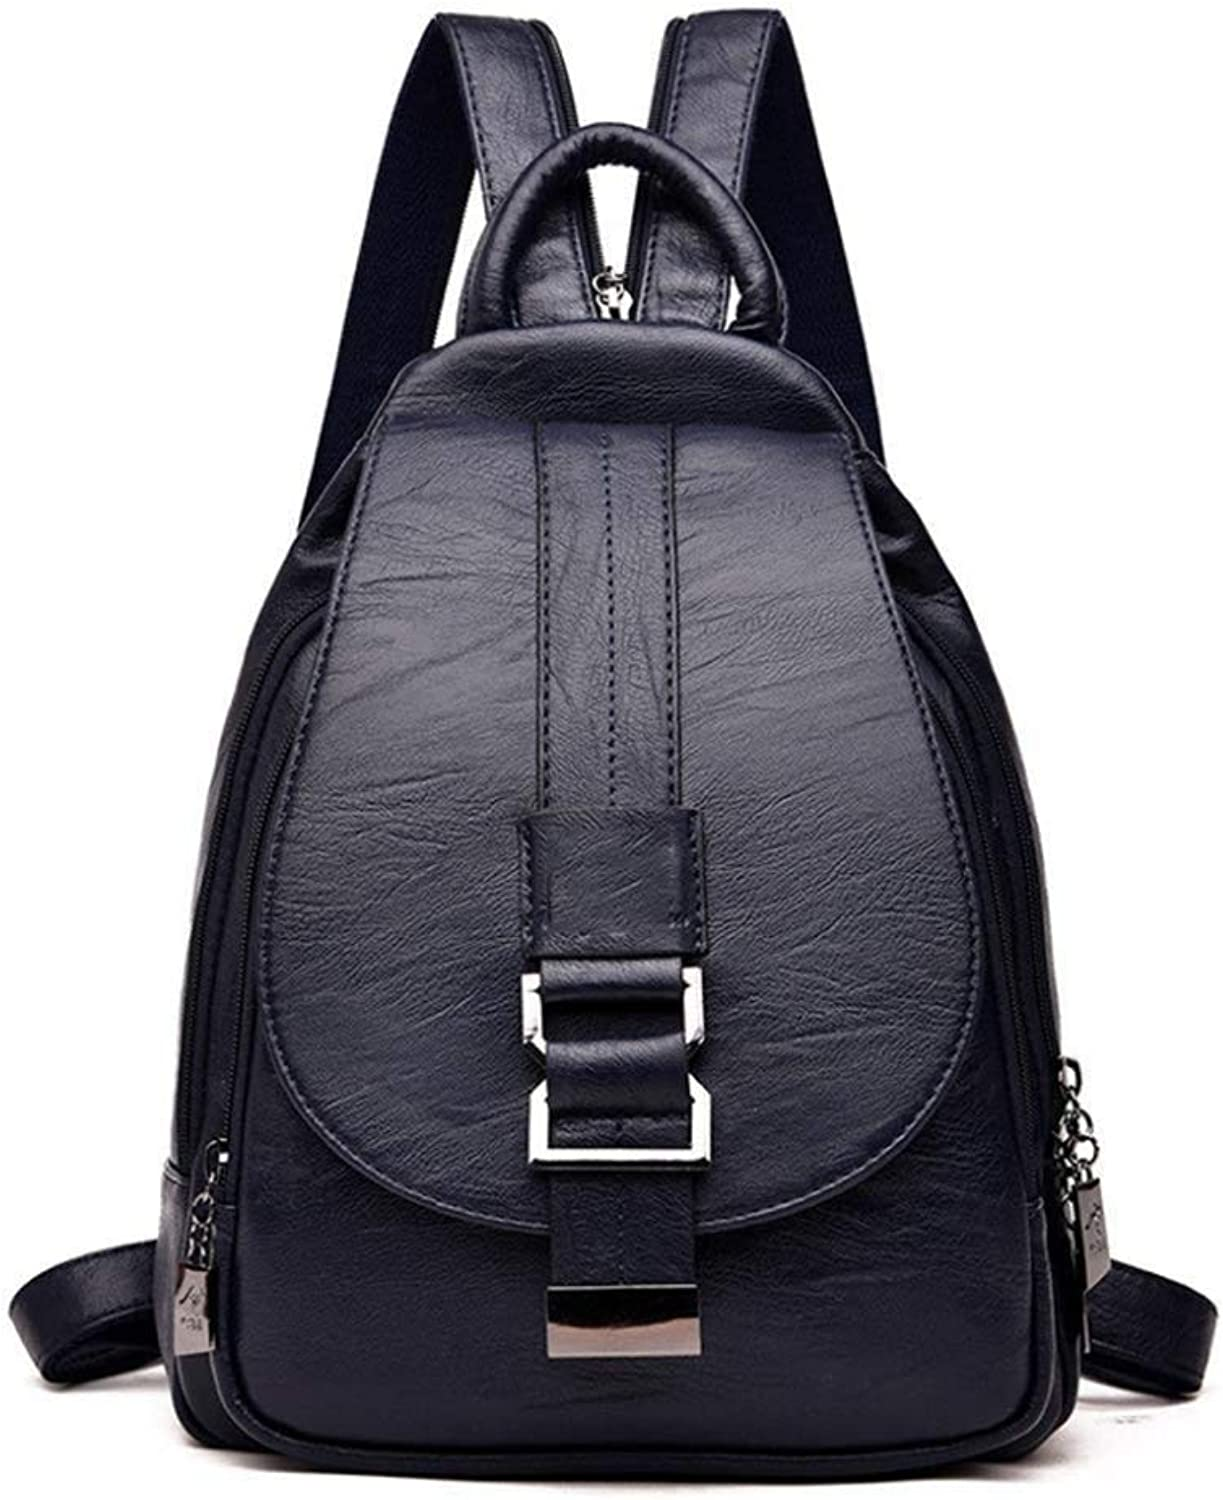 Sxuefang Women Leather Backpack Women's Chest Bag Simple Shoulder Bag Casual Soft Leather MultiFunctional Backpack 24x9x32cm